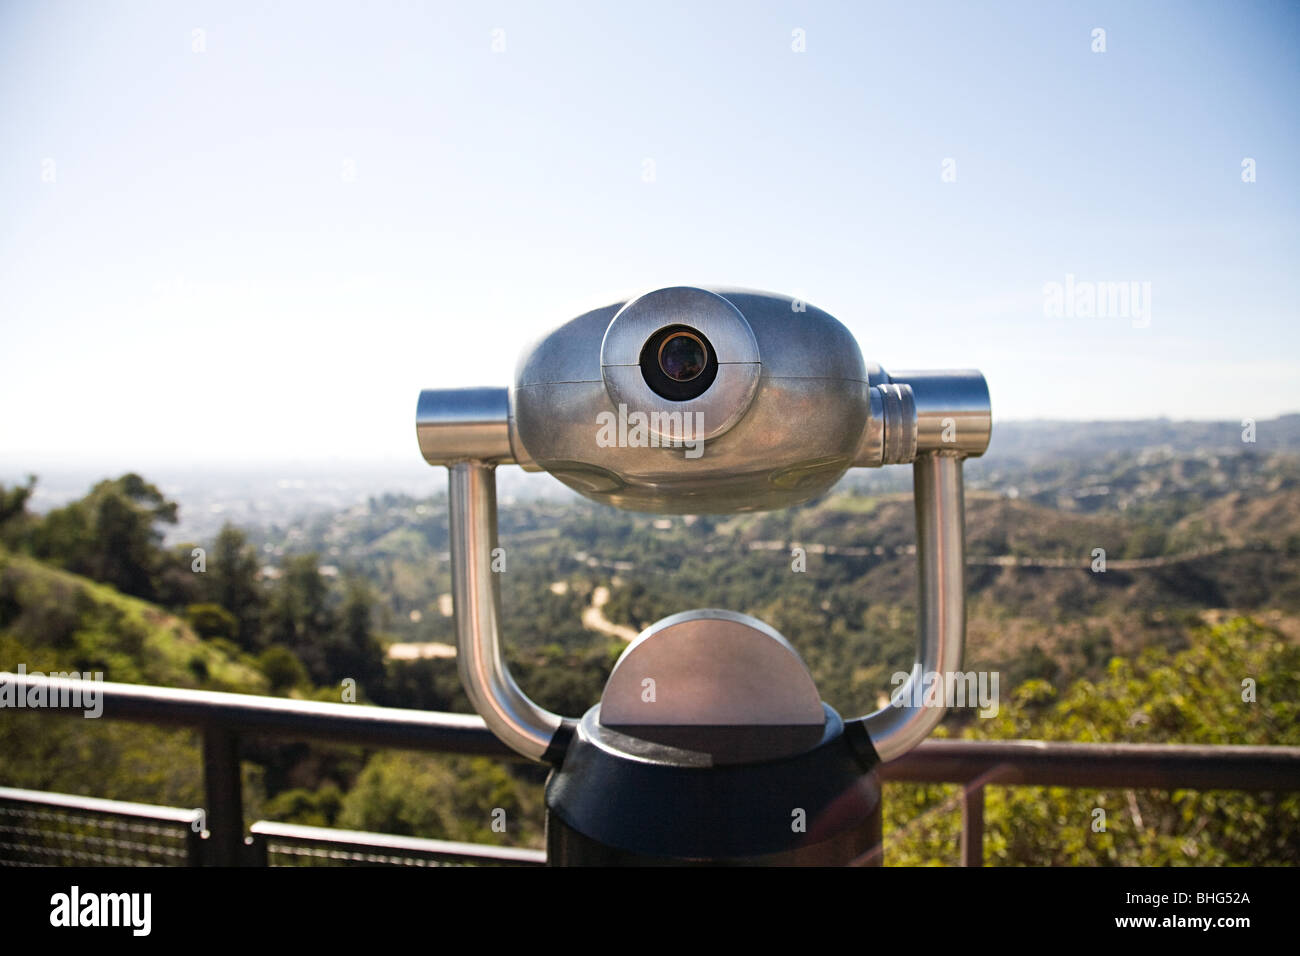 Telescope in griffith park with view of downtown los angeles - Stock Image